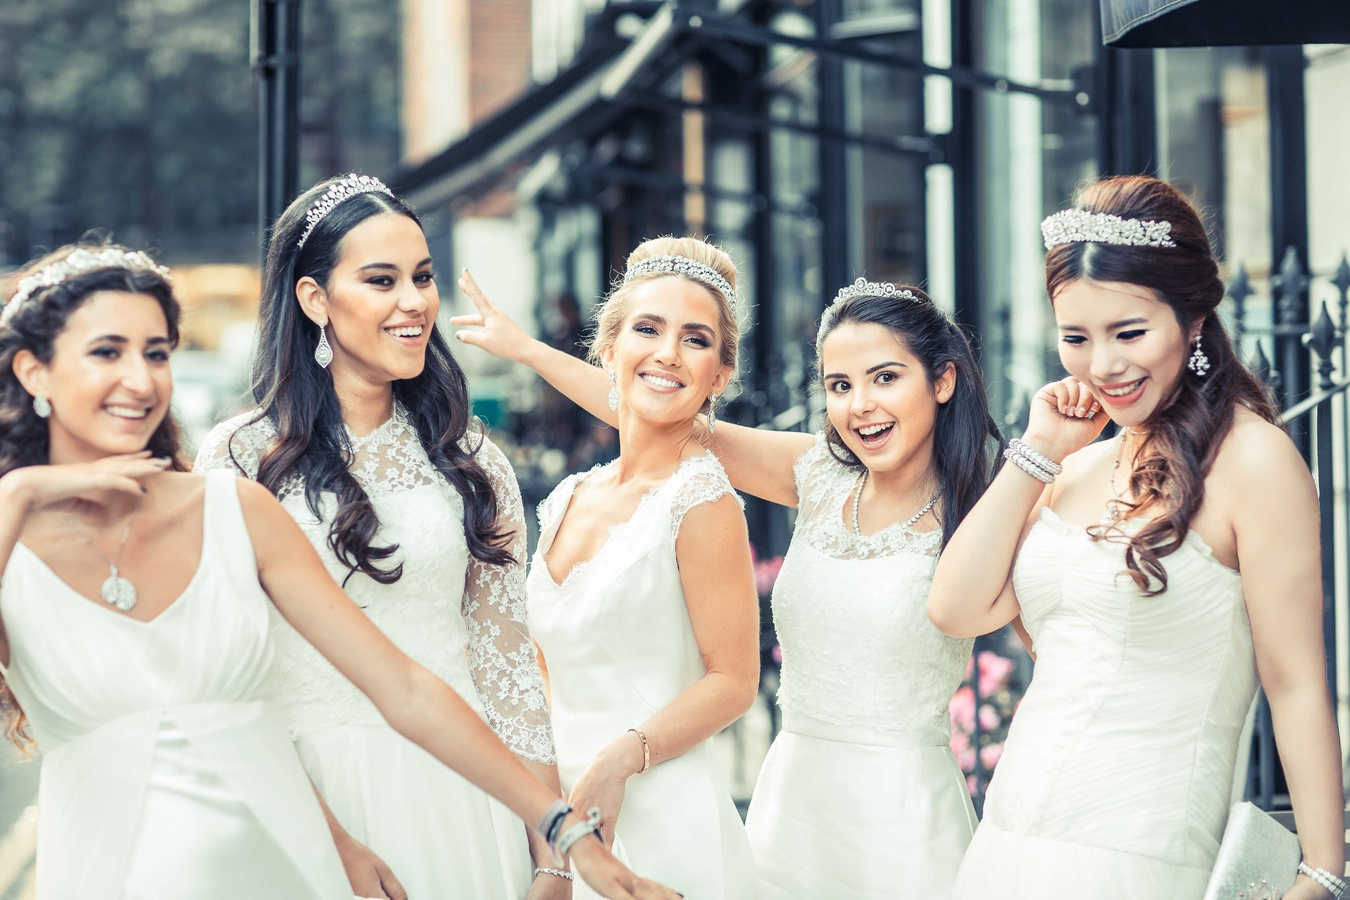 The importance of a bridesmaid attire